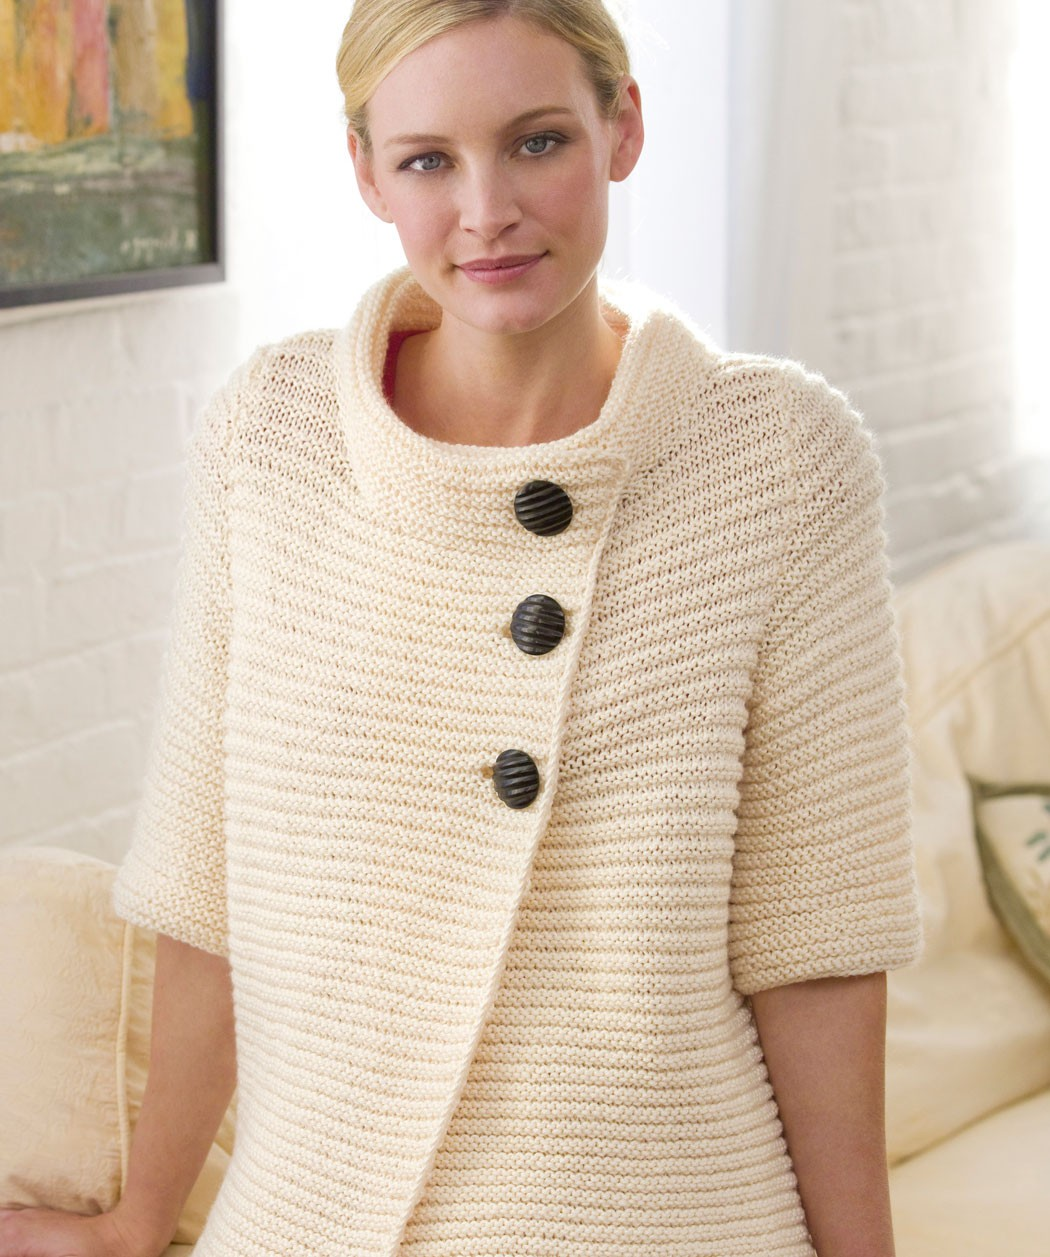 Women s Cardigan Knitting Patterns Free : Knitted Sweater Patterns for Women A Knitting Blog